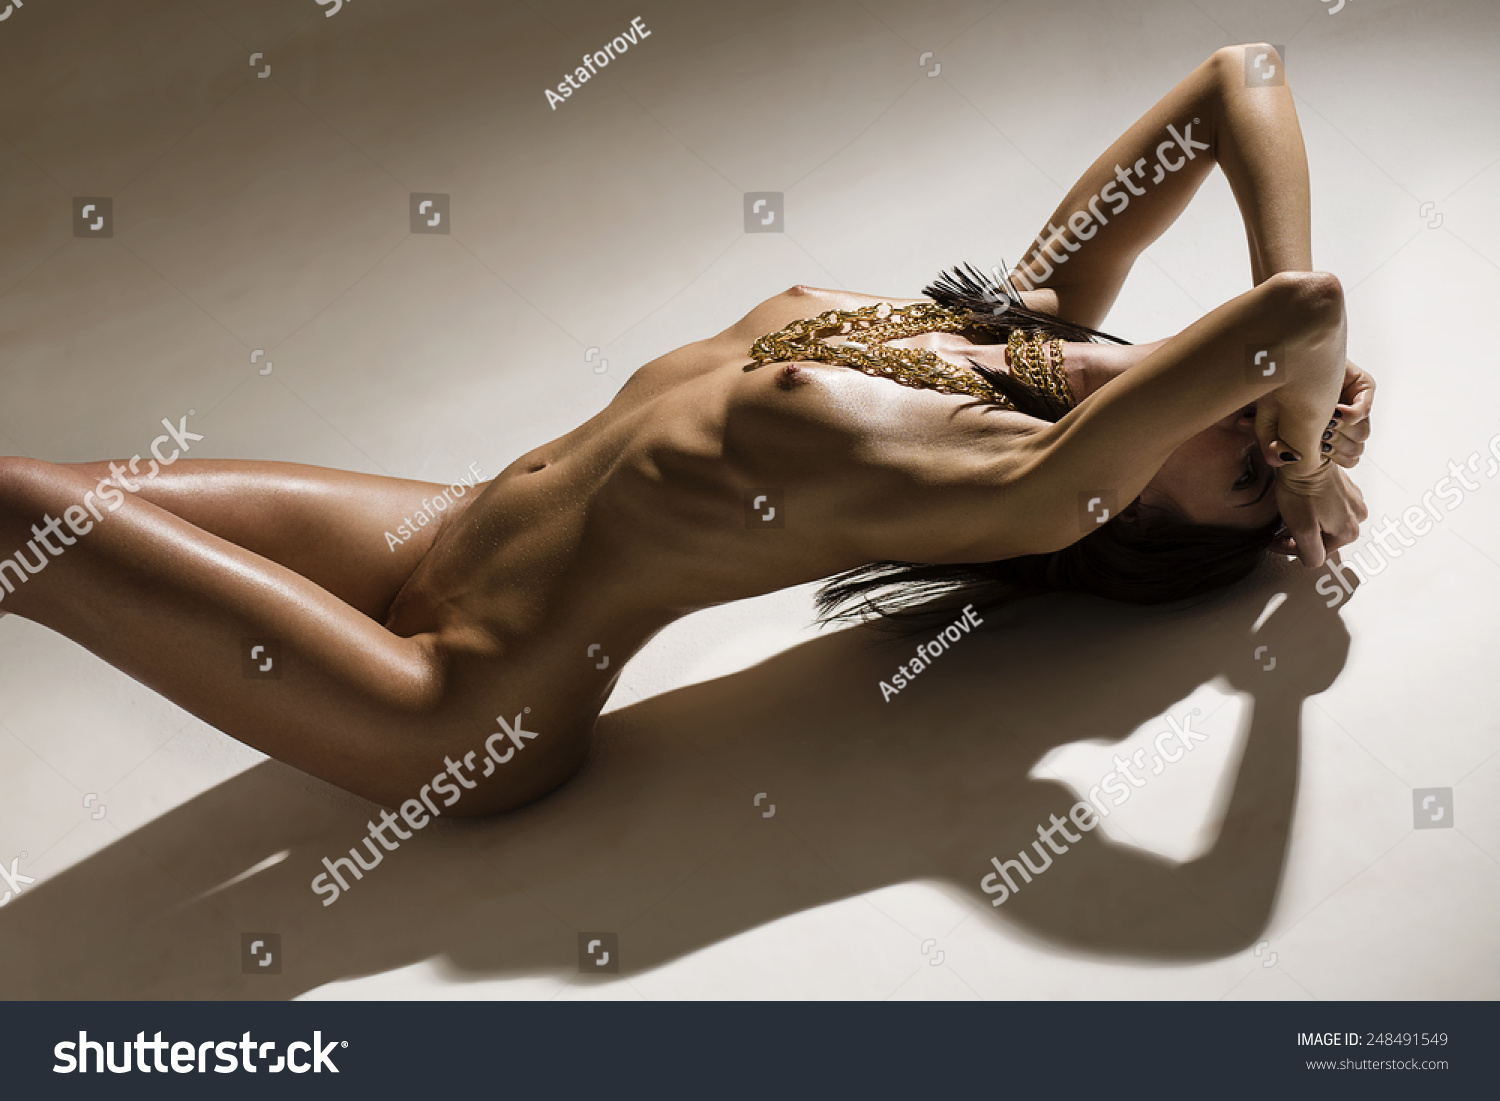 Pic Of Woman 110